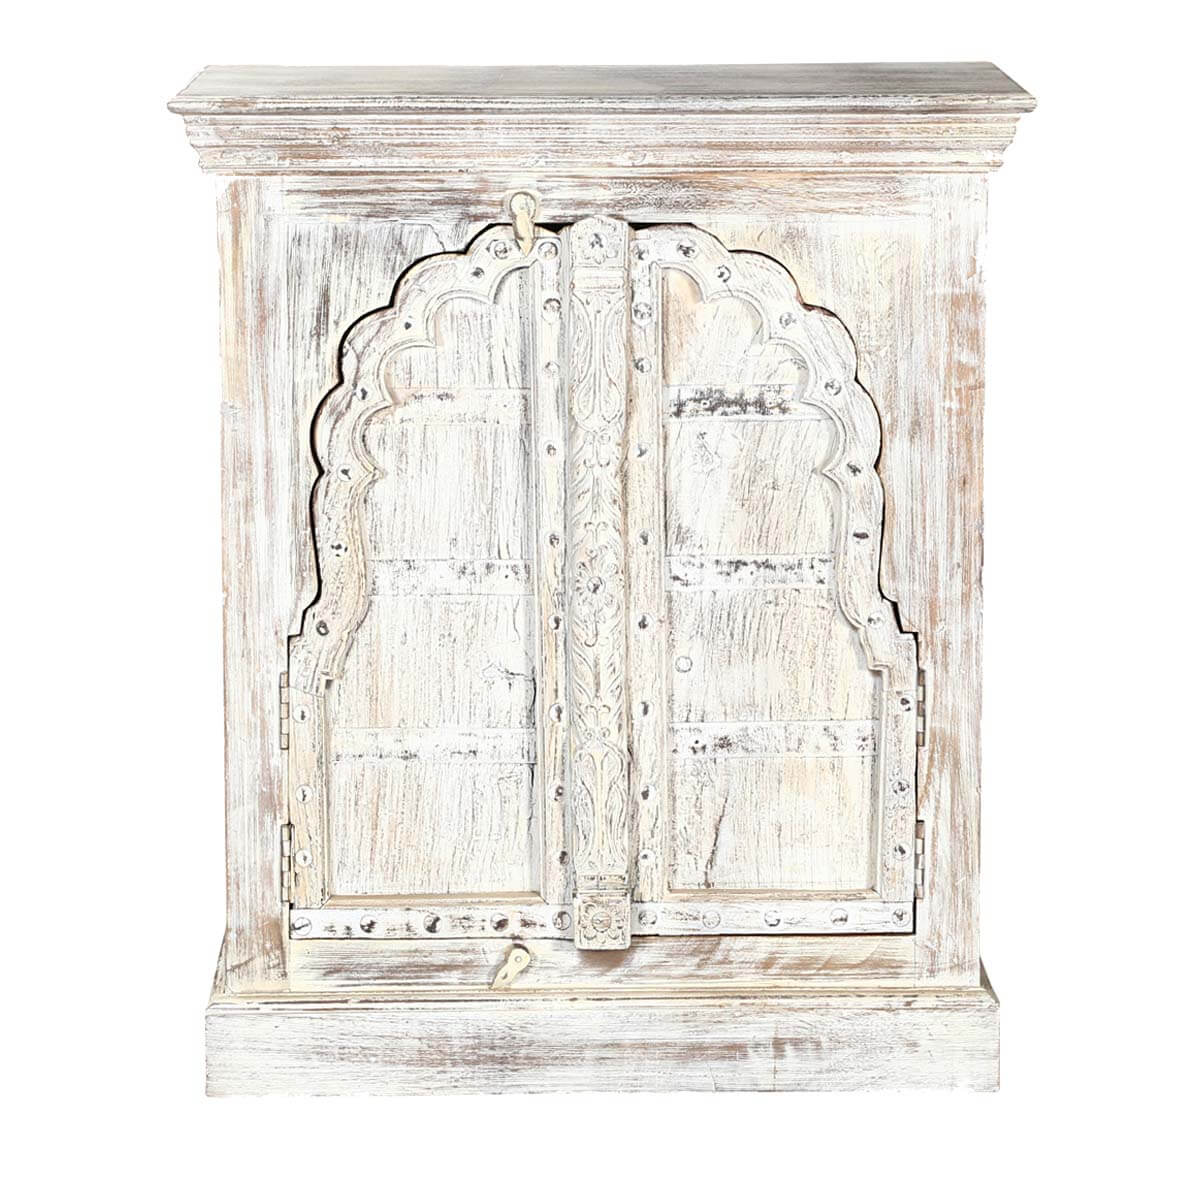 #796652  Rack Palazzo 32 White Arched Door Solid Wood 2 Door Storage Cabinet with 1200x1200 px of Brand New Solid Wood Storage Cabinets With Doors 12001200 pic @ avoidforclosure.info